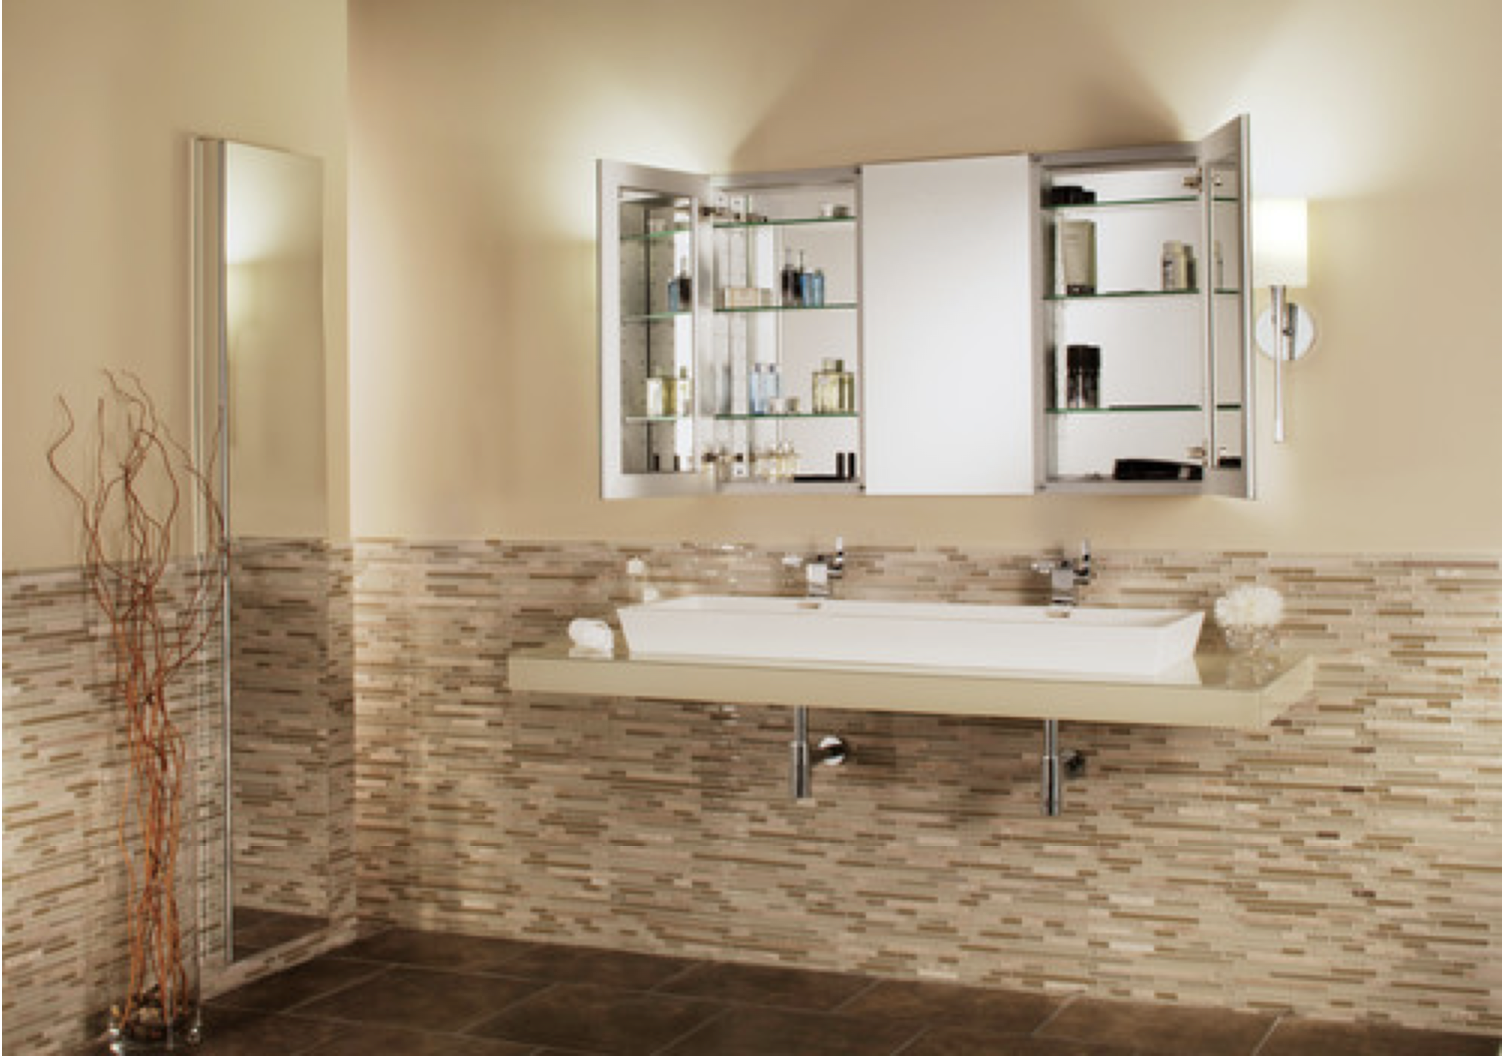 Houzz Bathroom Trends Report 7 Things You Need To Know Bathroom Trends Bathroom Design Bathroom Design Trends